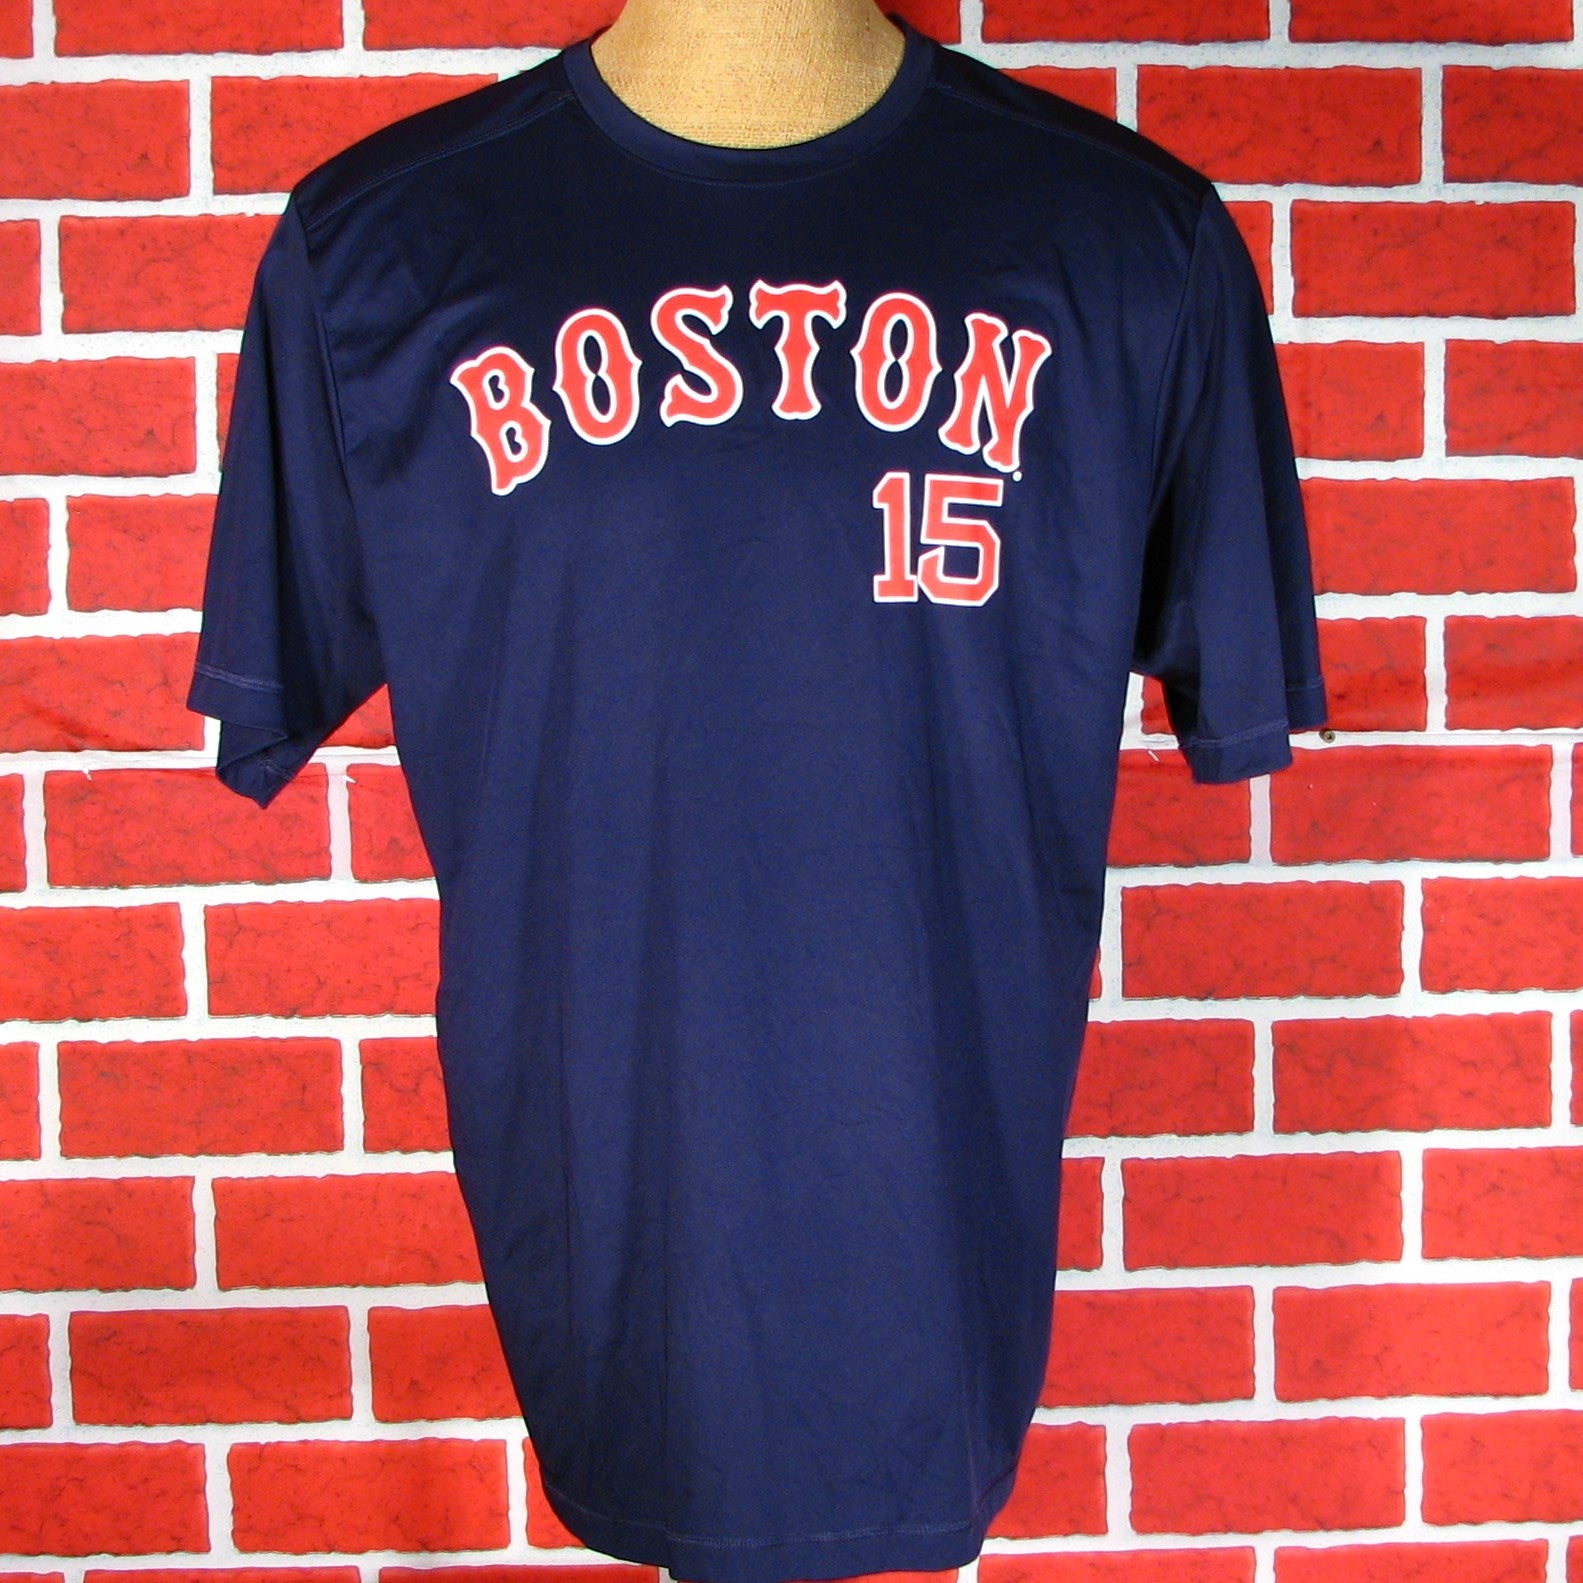 info for 0f304 6a776 Boston Red Sox Pedroia # 15 T-Shirt – Vintage T-Shirt Fans